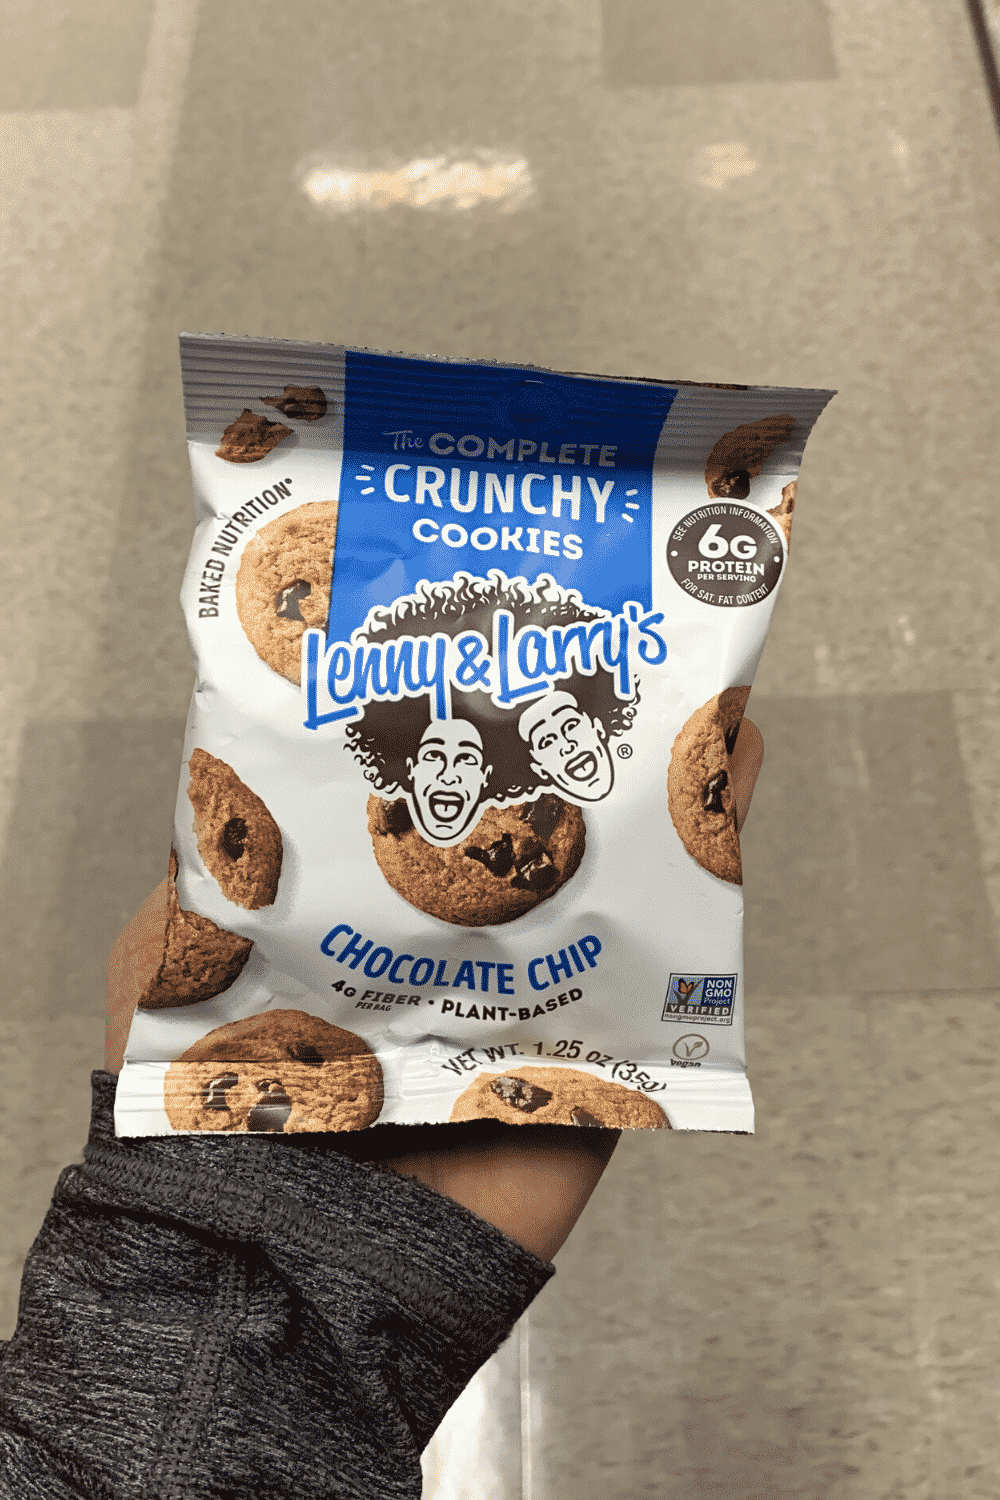 A hand holding a bag of Lenny and Larry's crunchy chocolate chip cookies